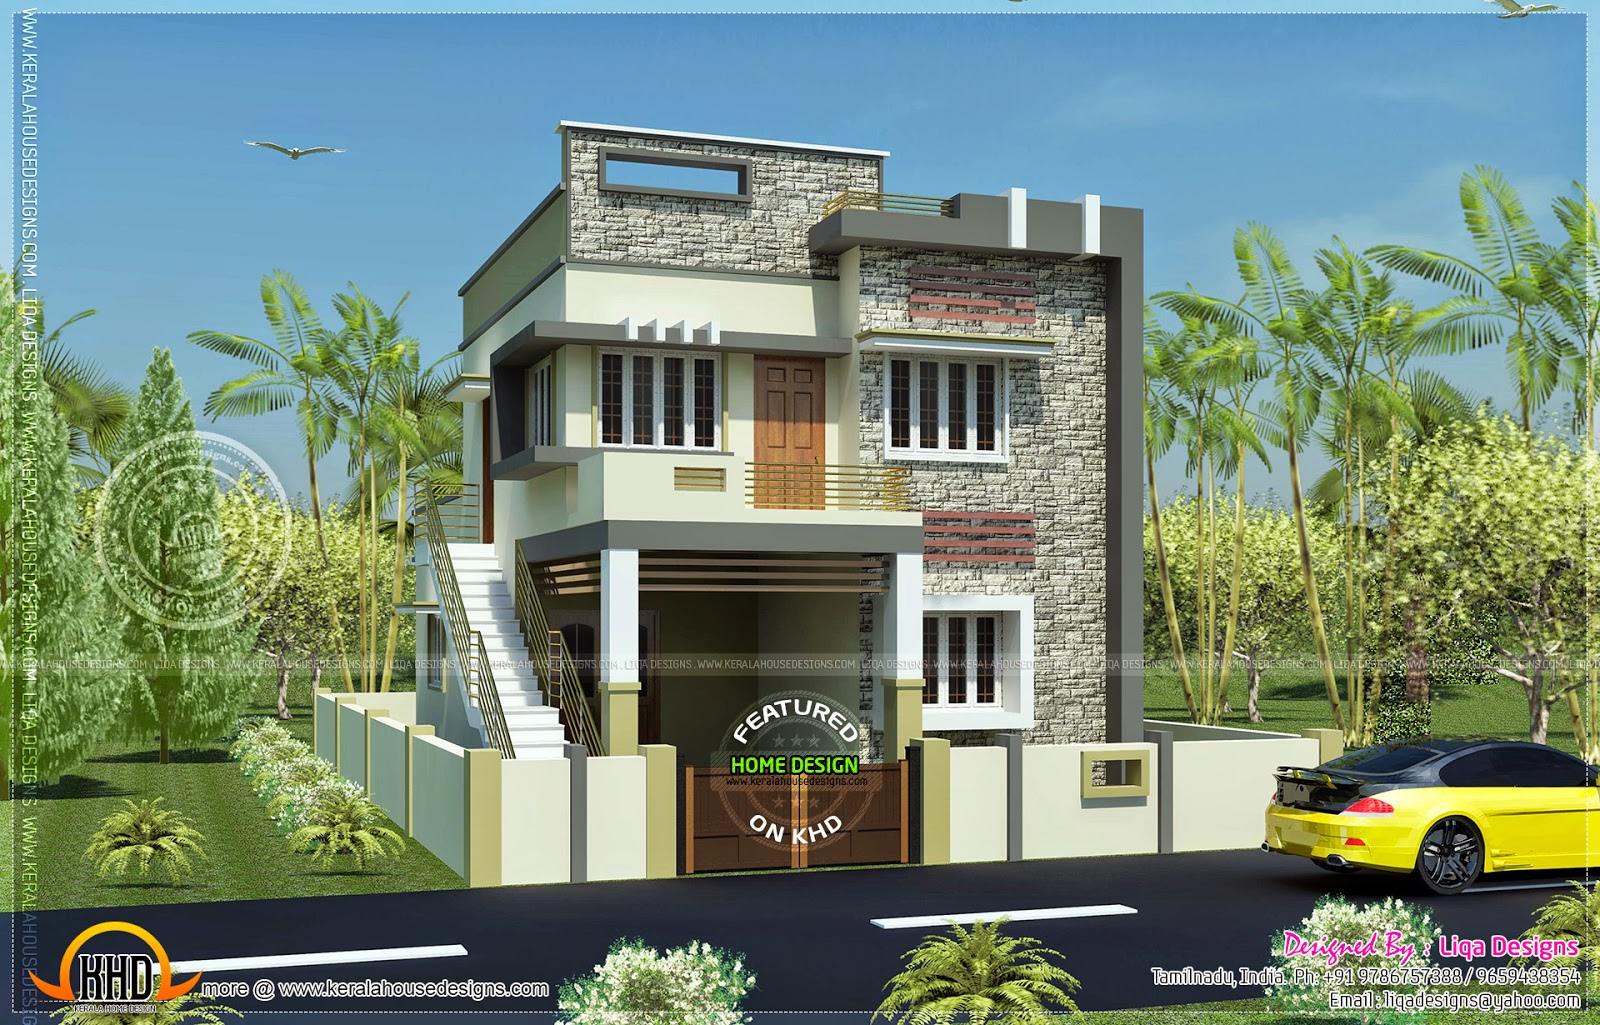 1289 sq ft 4 bedroom modern tamil house design kerala for Indian small house design 2 bedroom